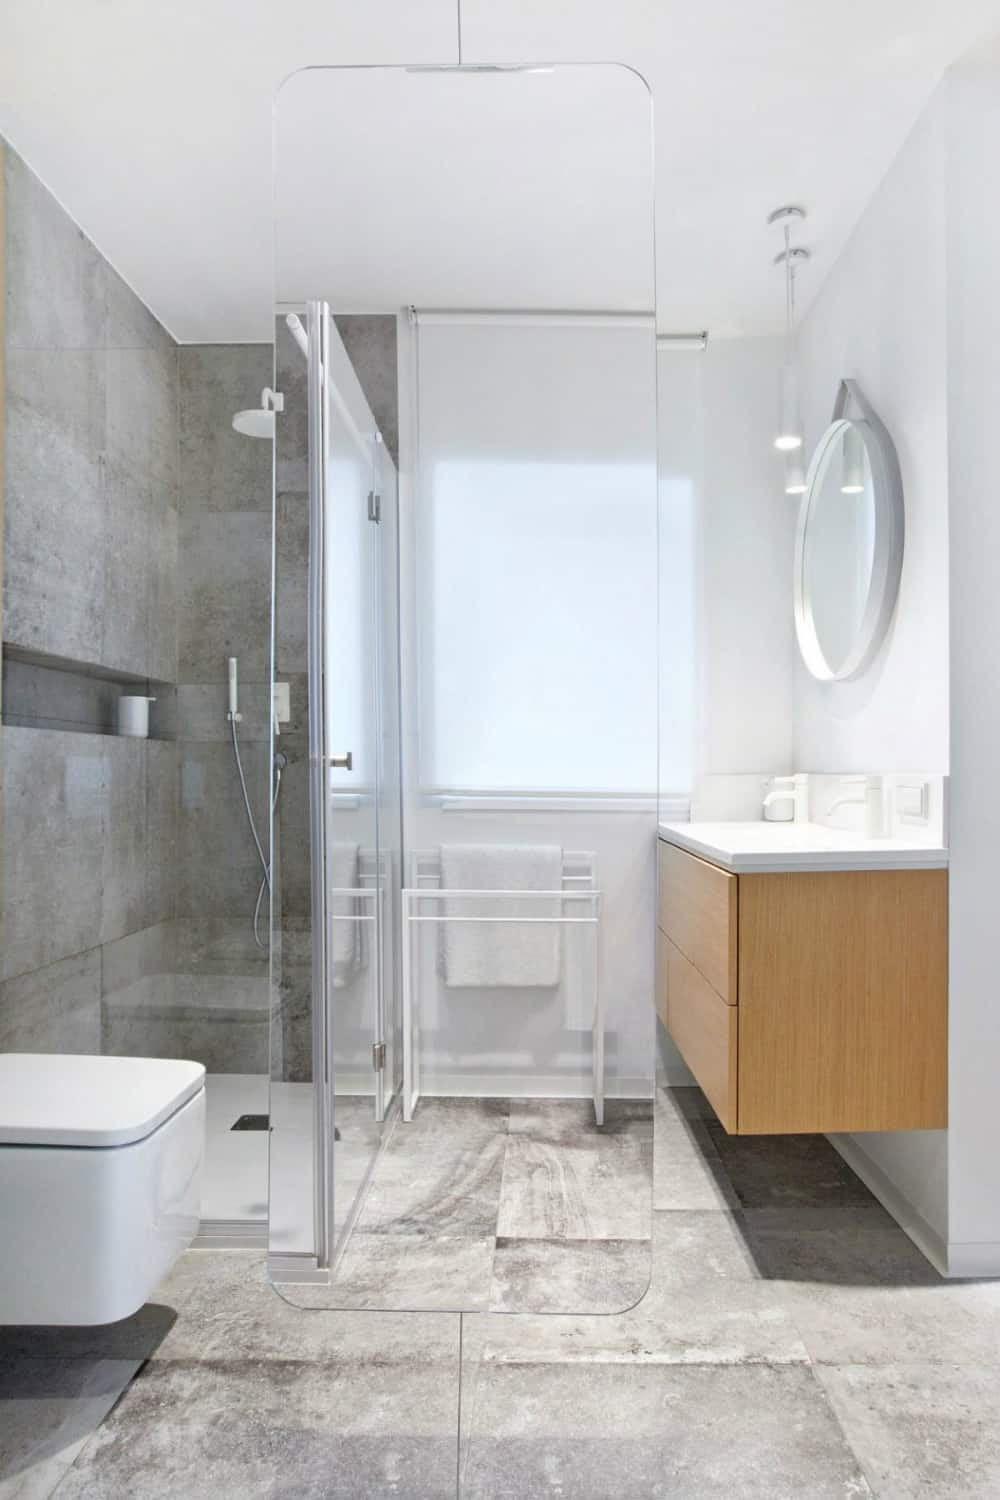 A rounded angle glass divider demarcates areas in the bathroom